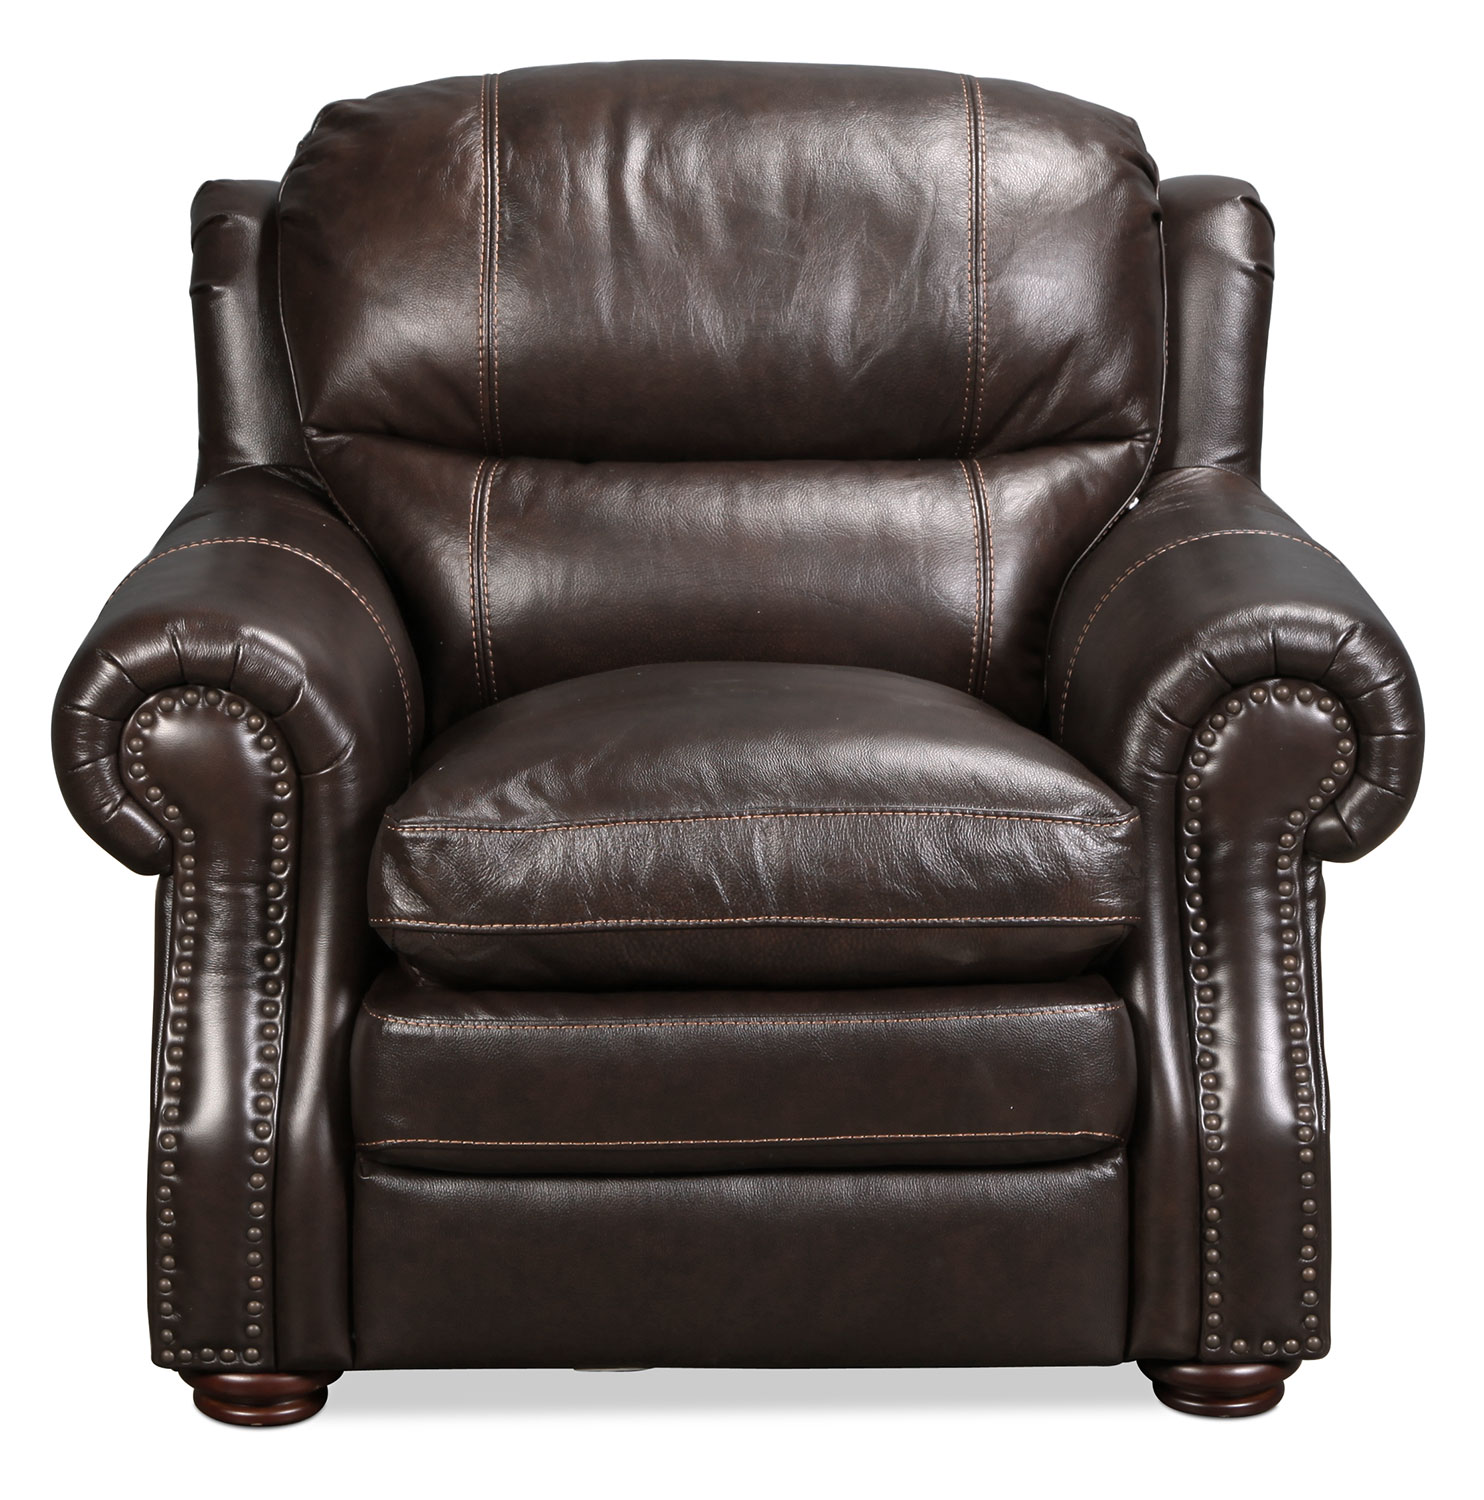 Taft Loveseat Brown Levin Furniture